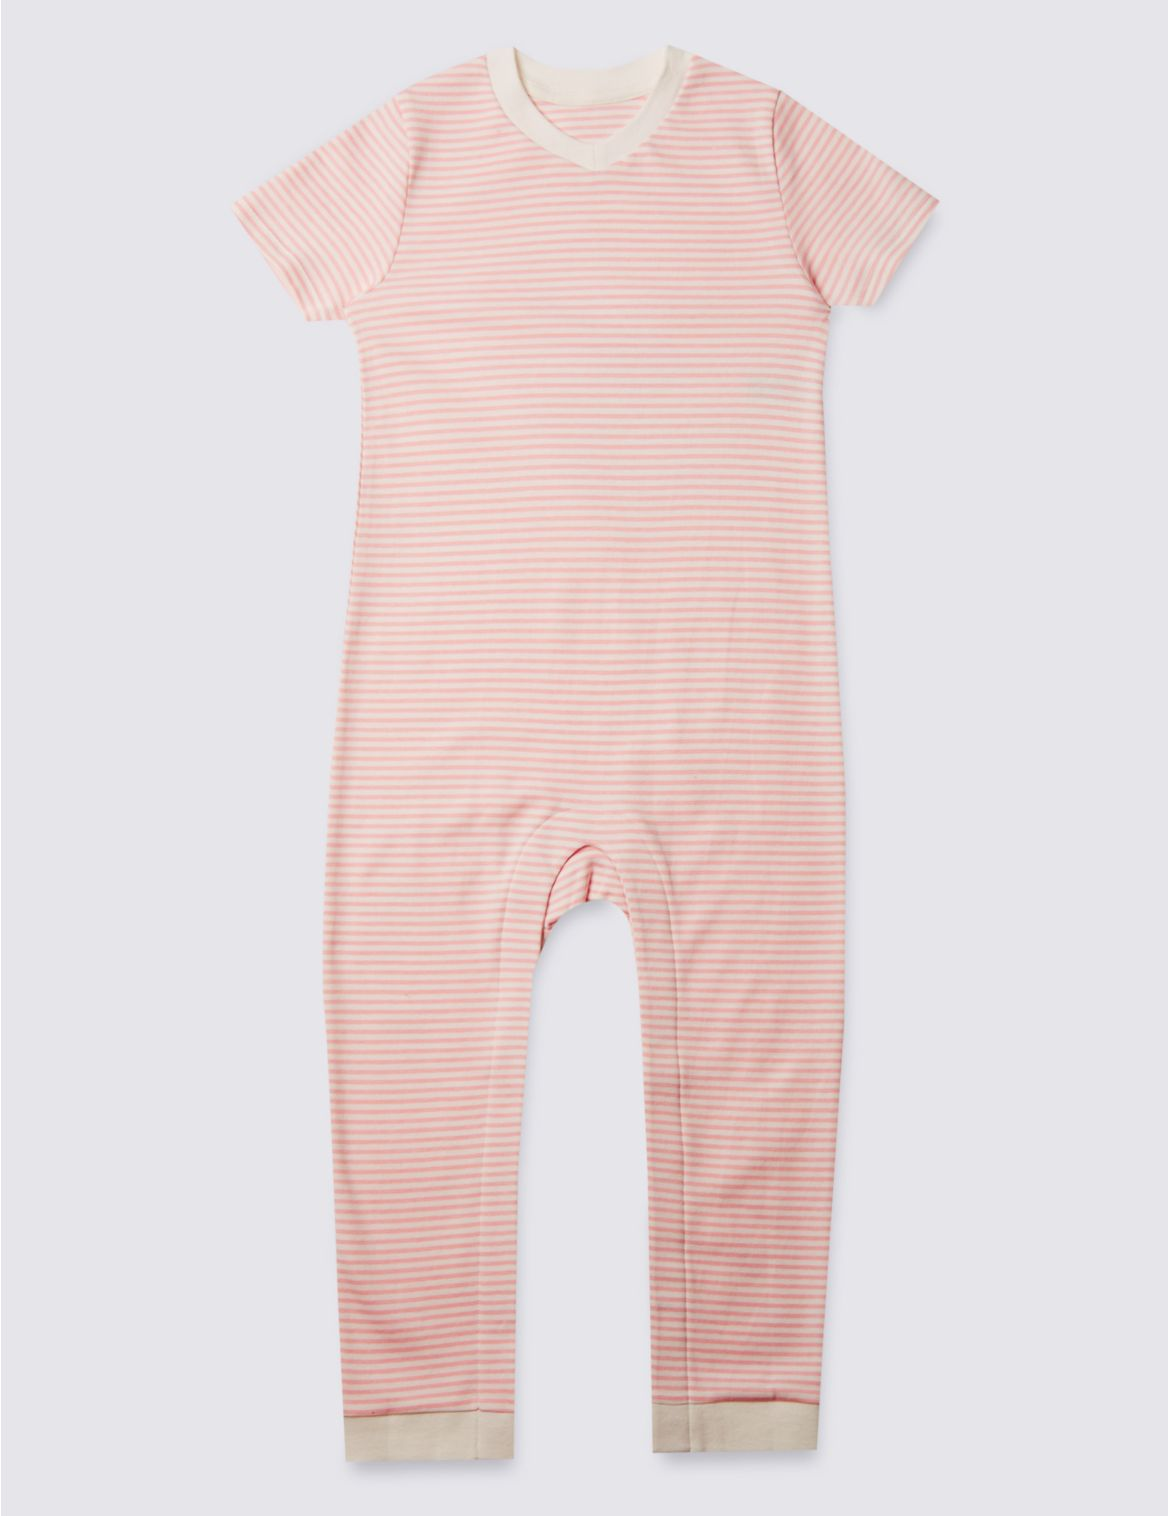 SD 04 T78 4536 A4 X EC 0?wid=1168&hei=1516&fit=fit,1 - Kids & Baby Clothing